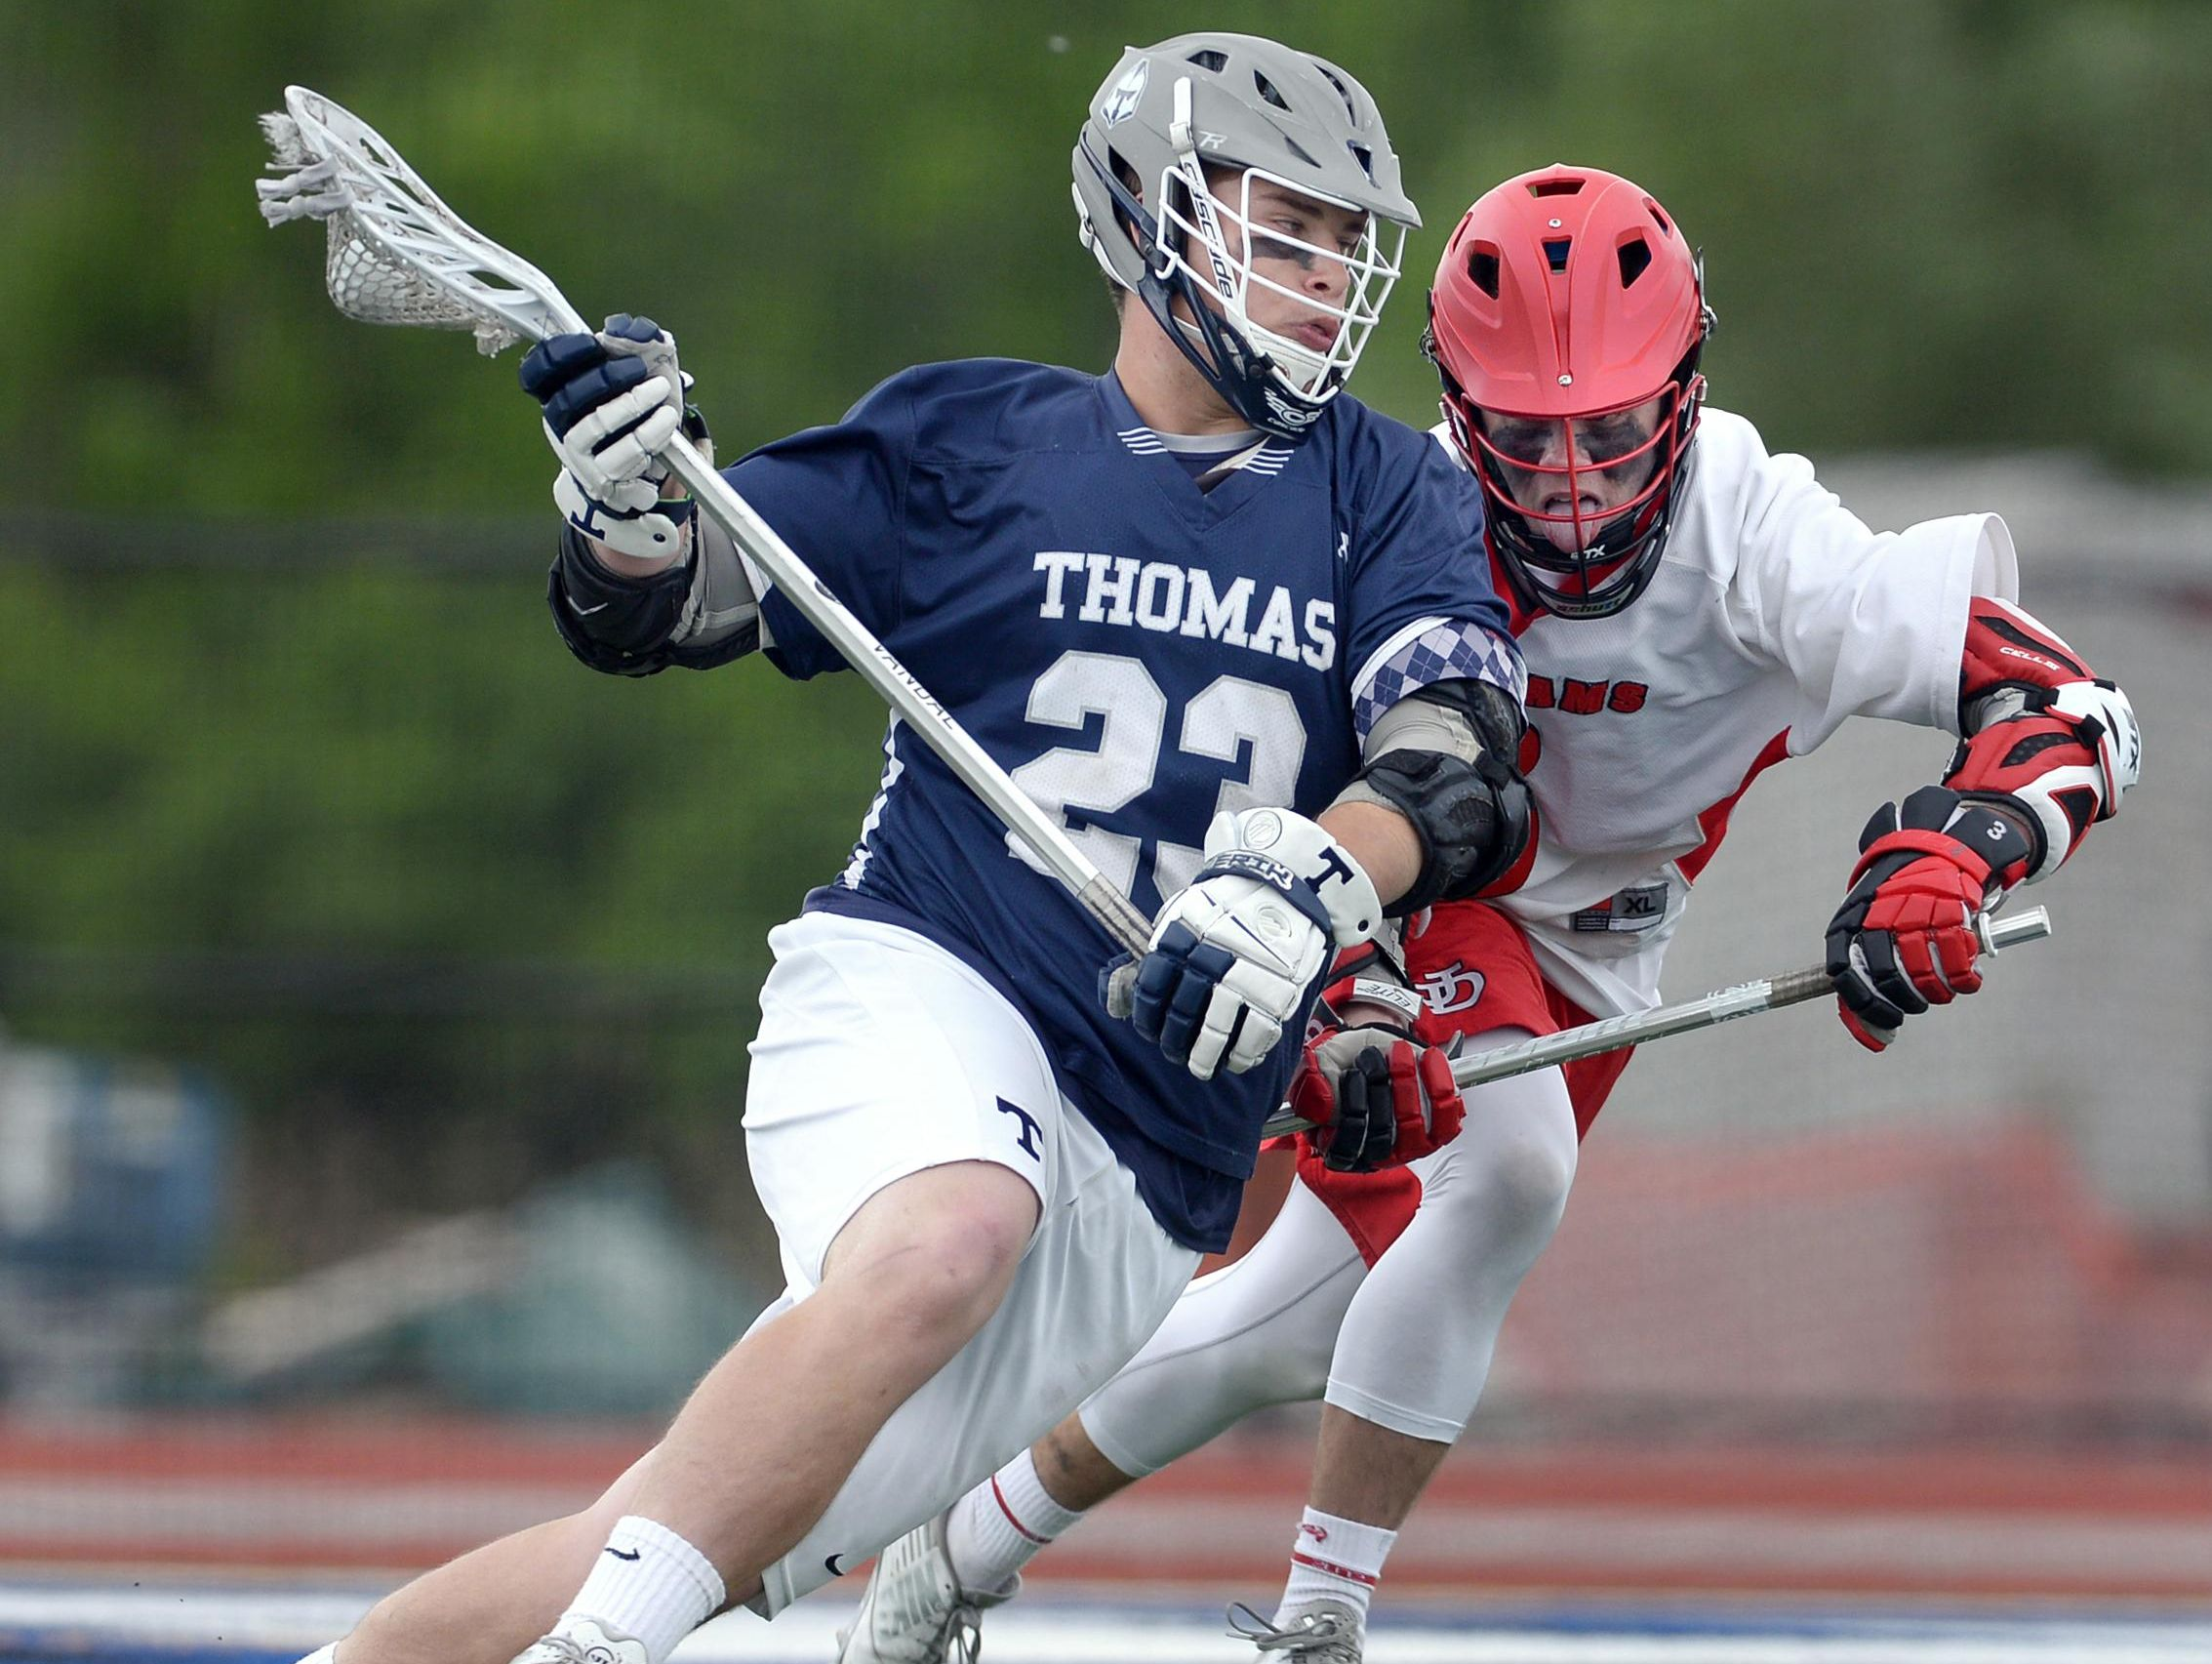 Webster Thomas' Pierce Currie, left, is defended by Jamesville-Dewitt's Matthew Paul during the NYSPHSAA Class B Western Semifinal played at Cicero-North Syracuse High School on Wednesday, June 8, 2016. Webster Thomas' season ended with a 13-9 loss to Jamesville-Dewitt-III.